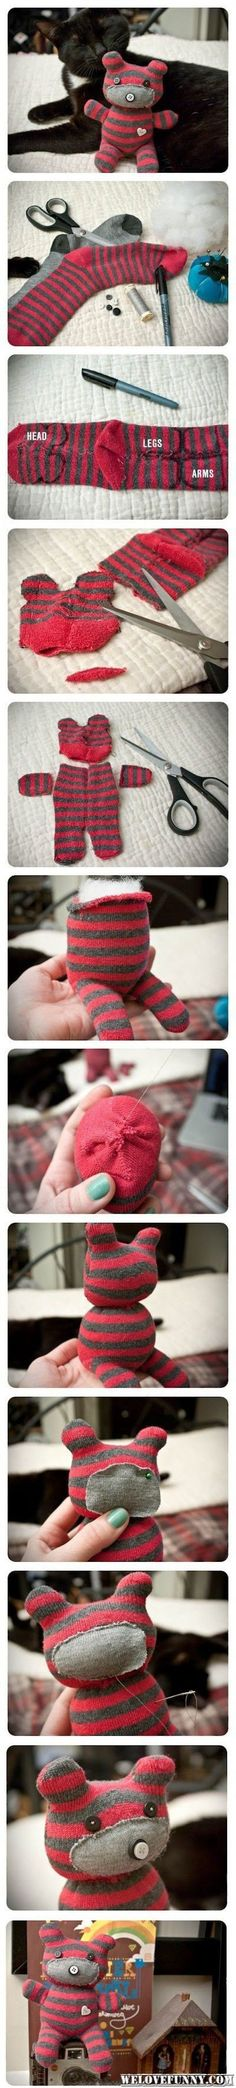 How to use the #socks make cloth bears #diy #crafts